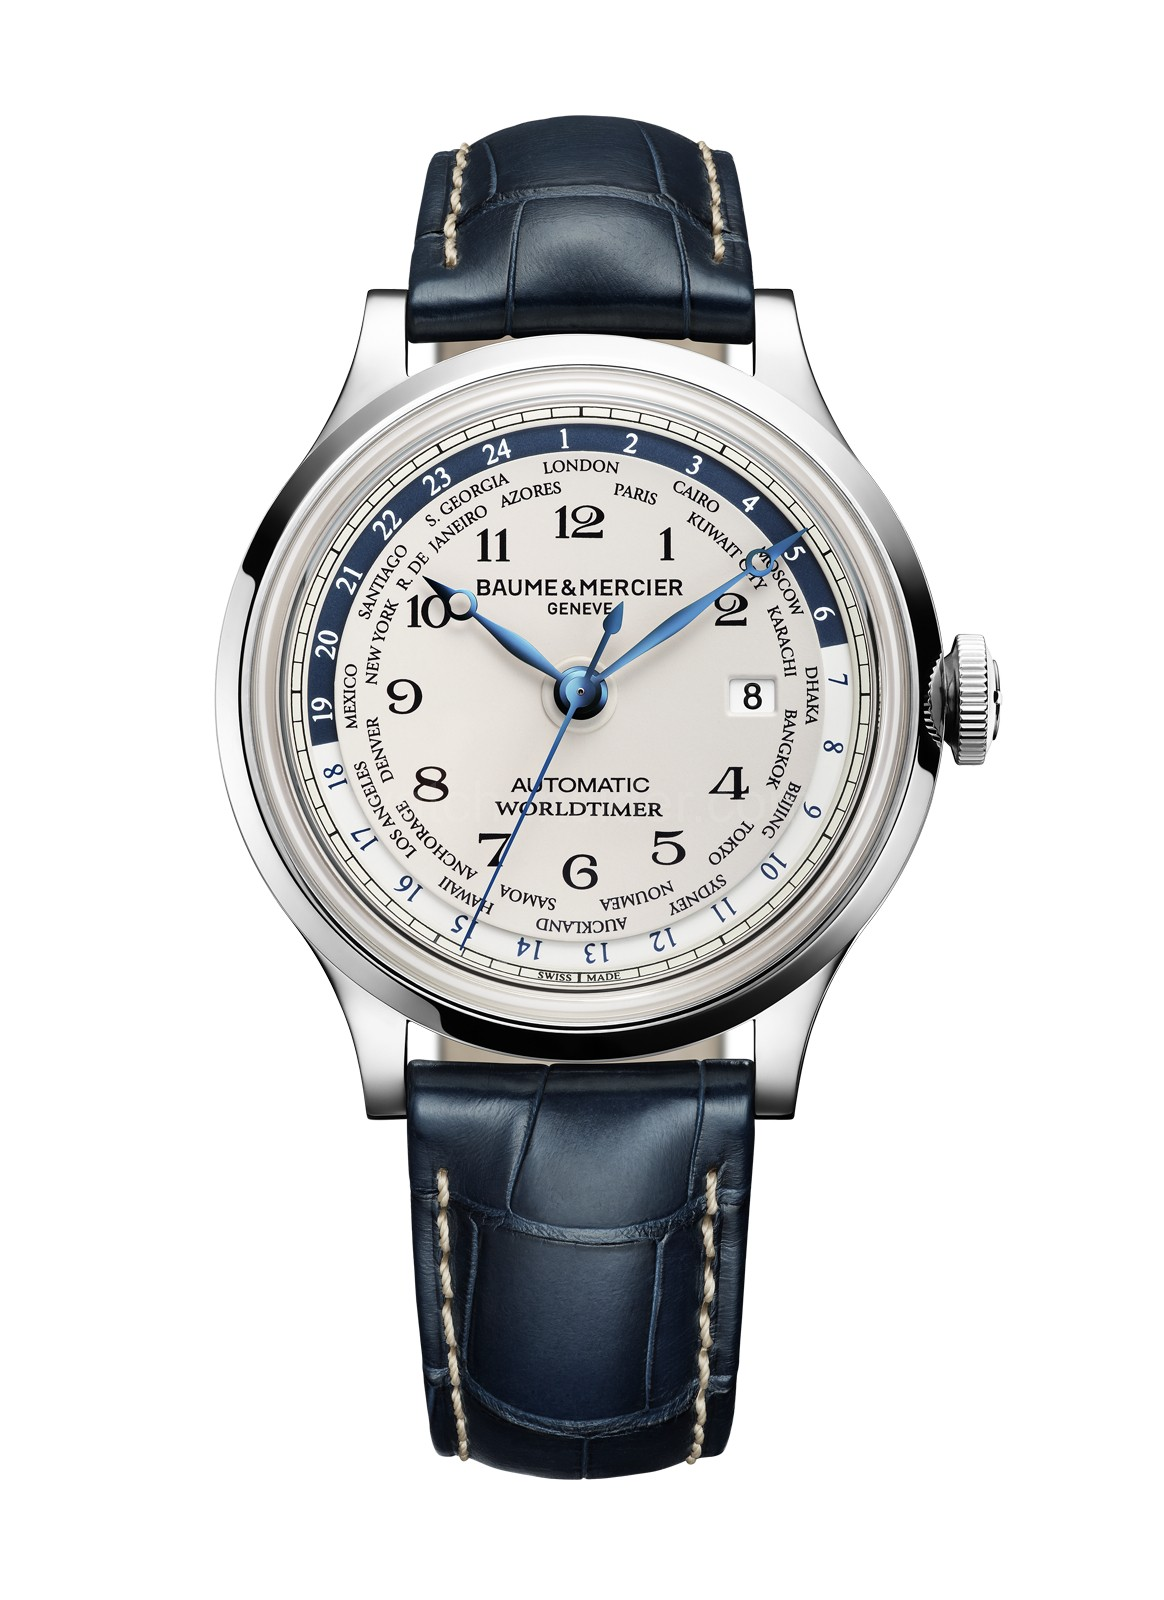 CAPELAND - 10106, Watches, Baume & Mercier - Ora by D'Amore Jewelers